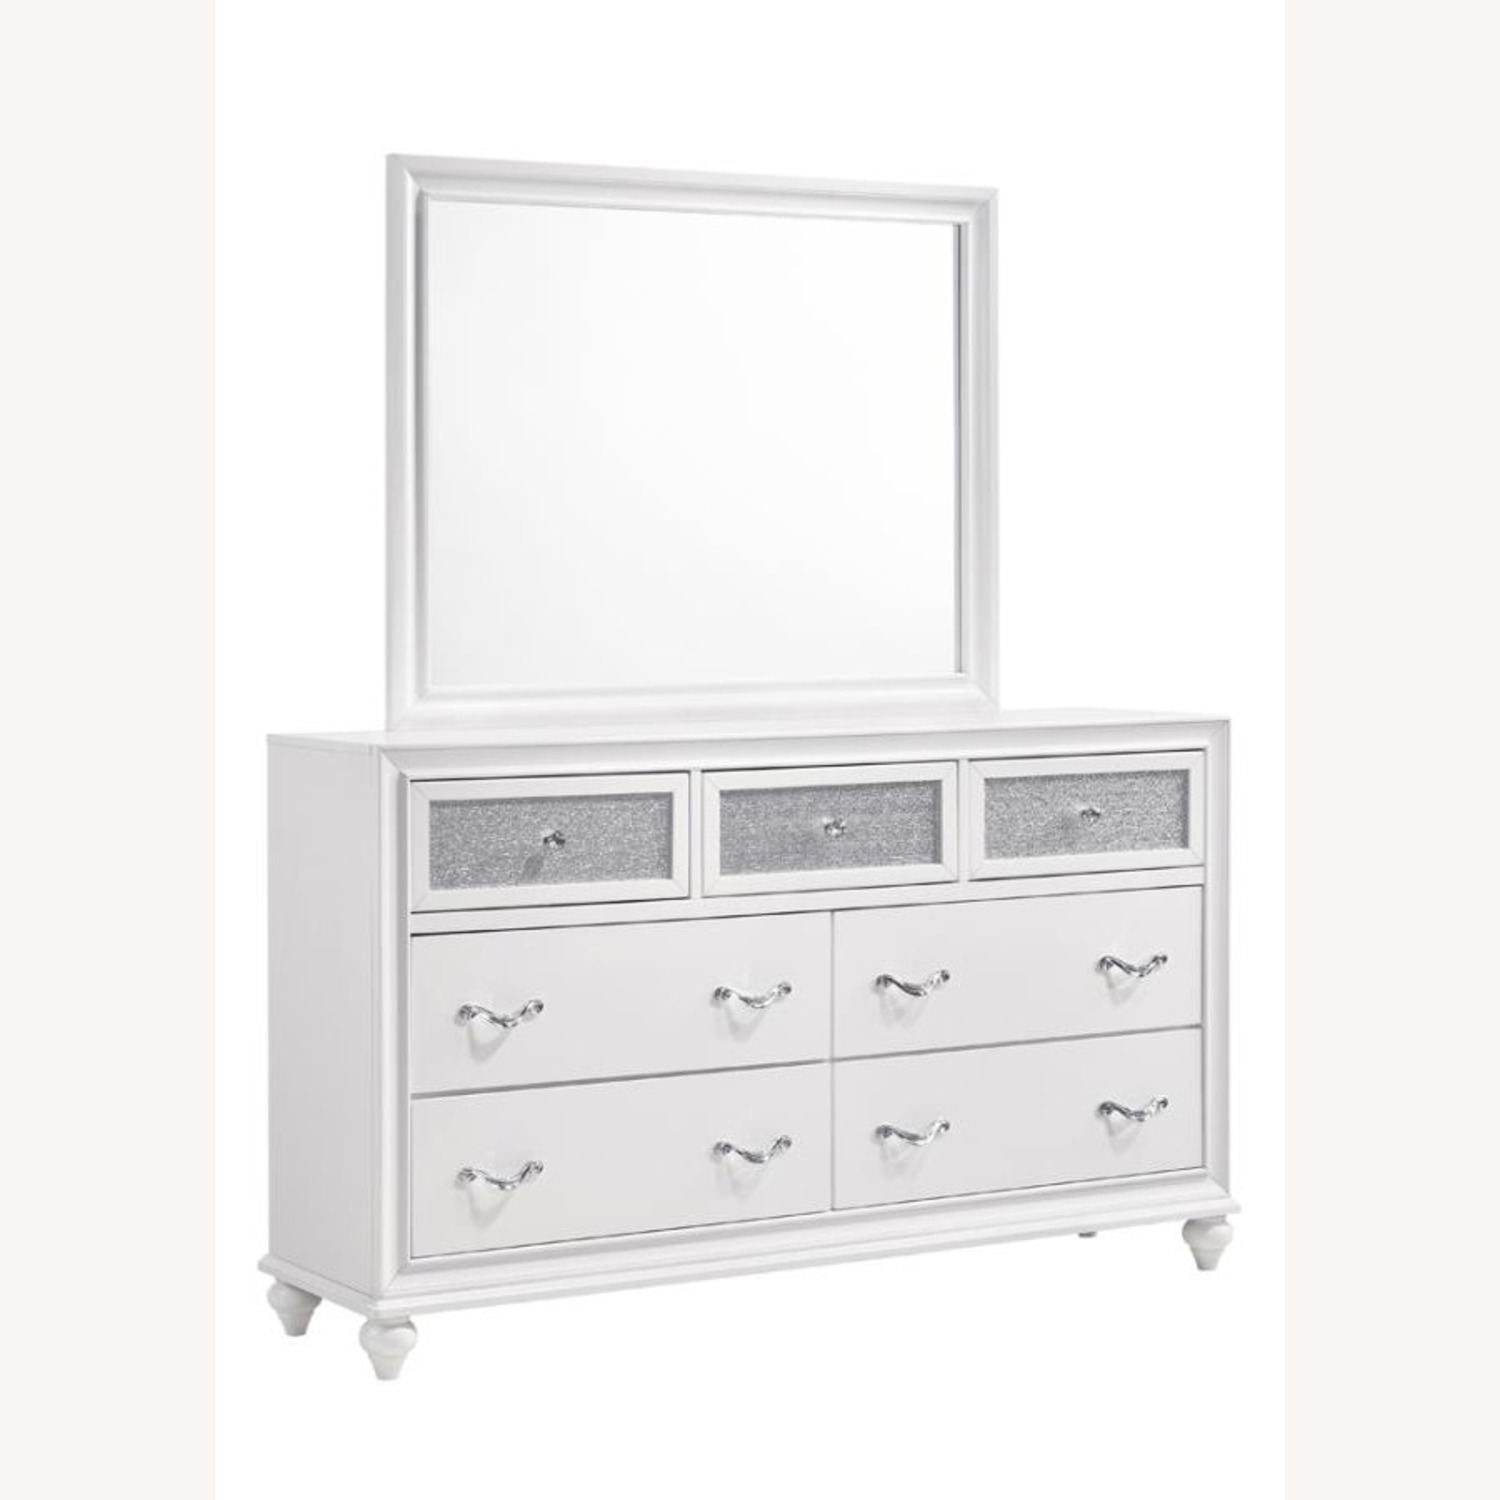 Mirror Crafted In White Wood Finish - image-0